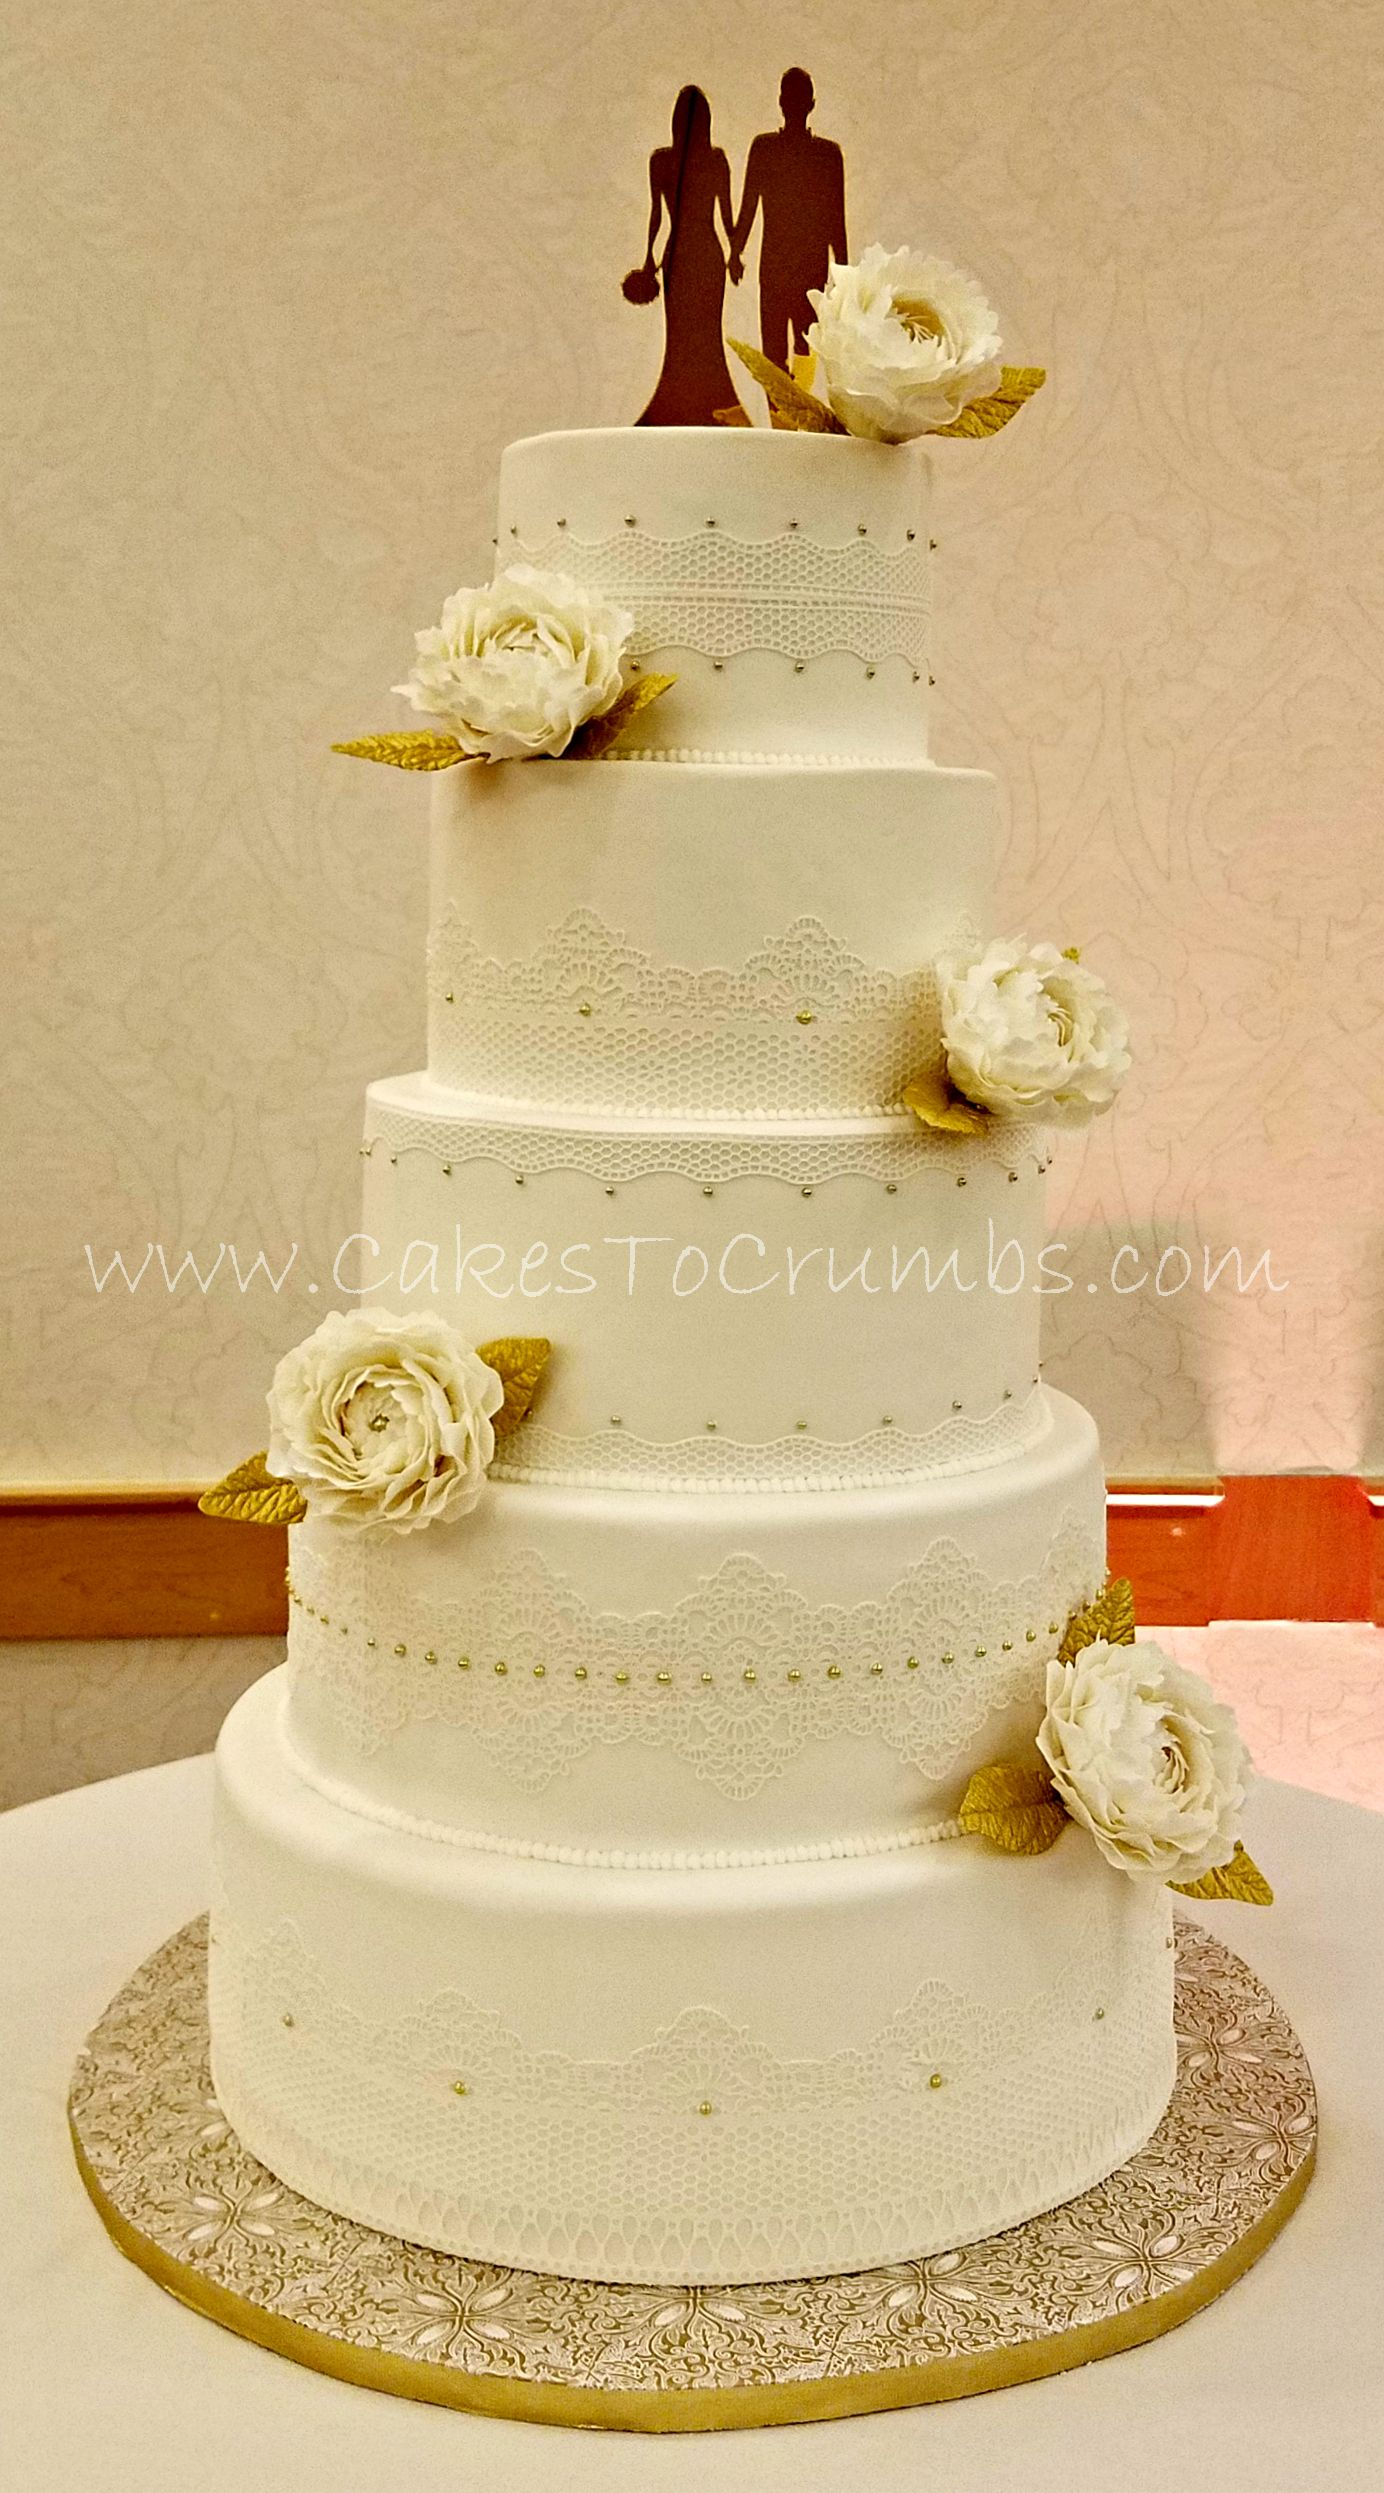 White and Gold wedding cake - Lace wedding cake with flowers and ...